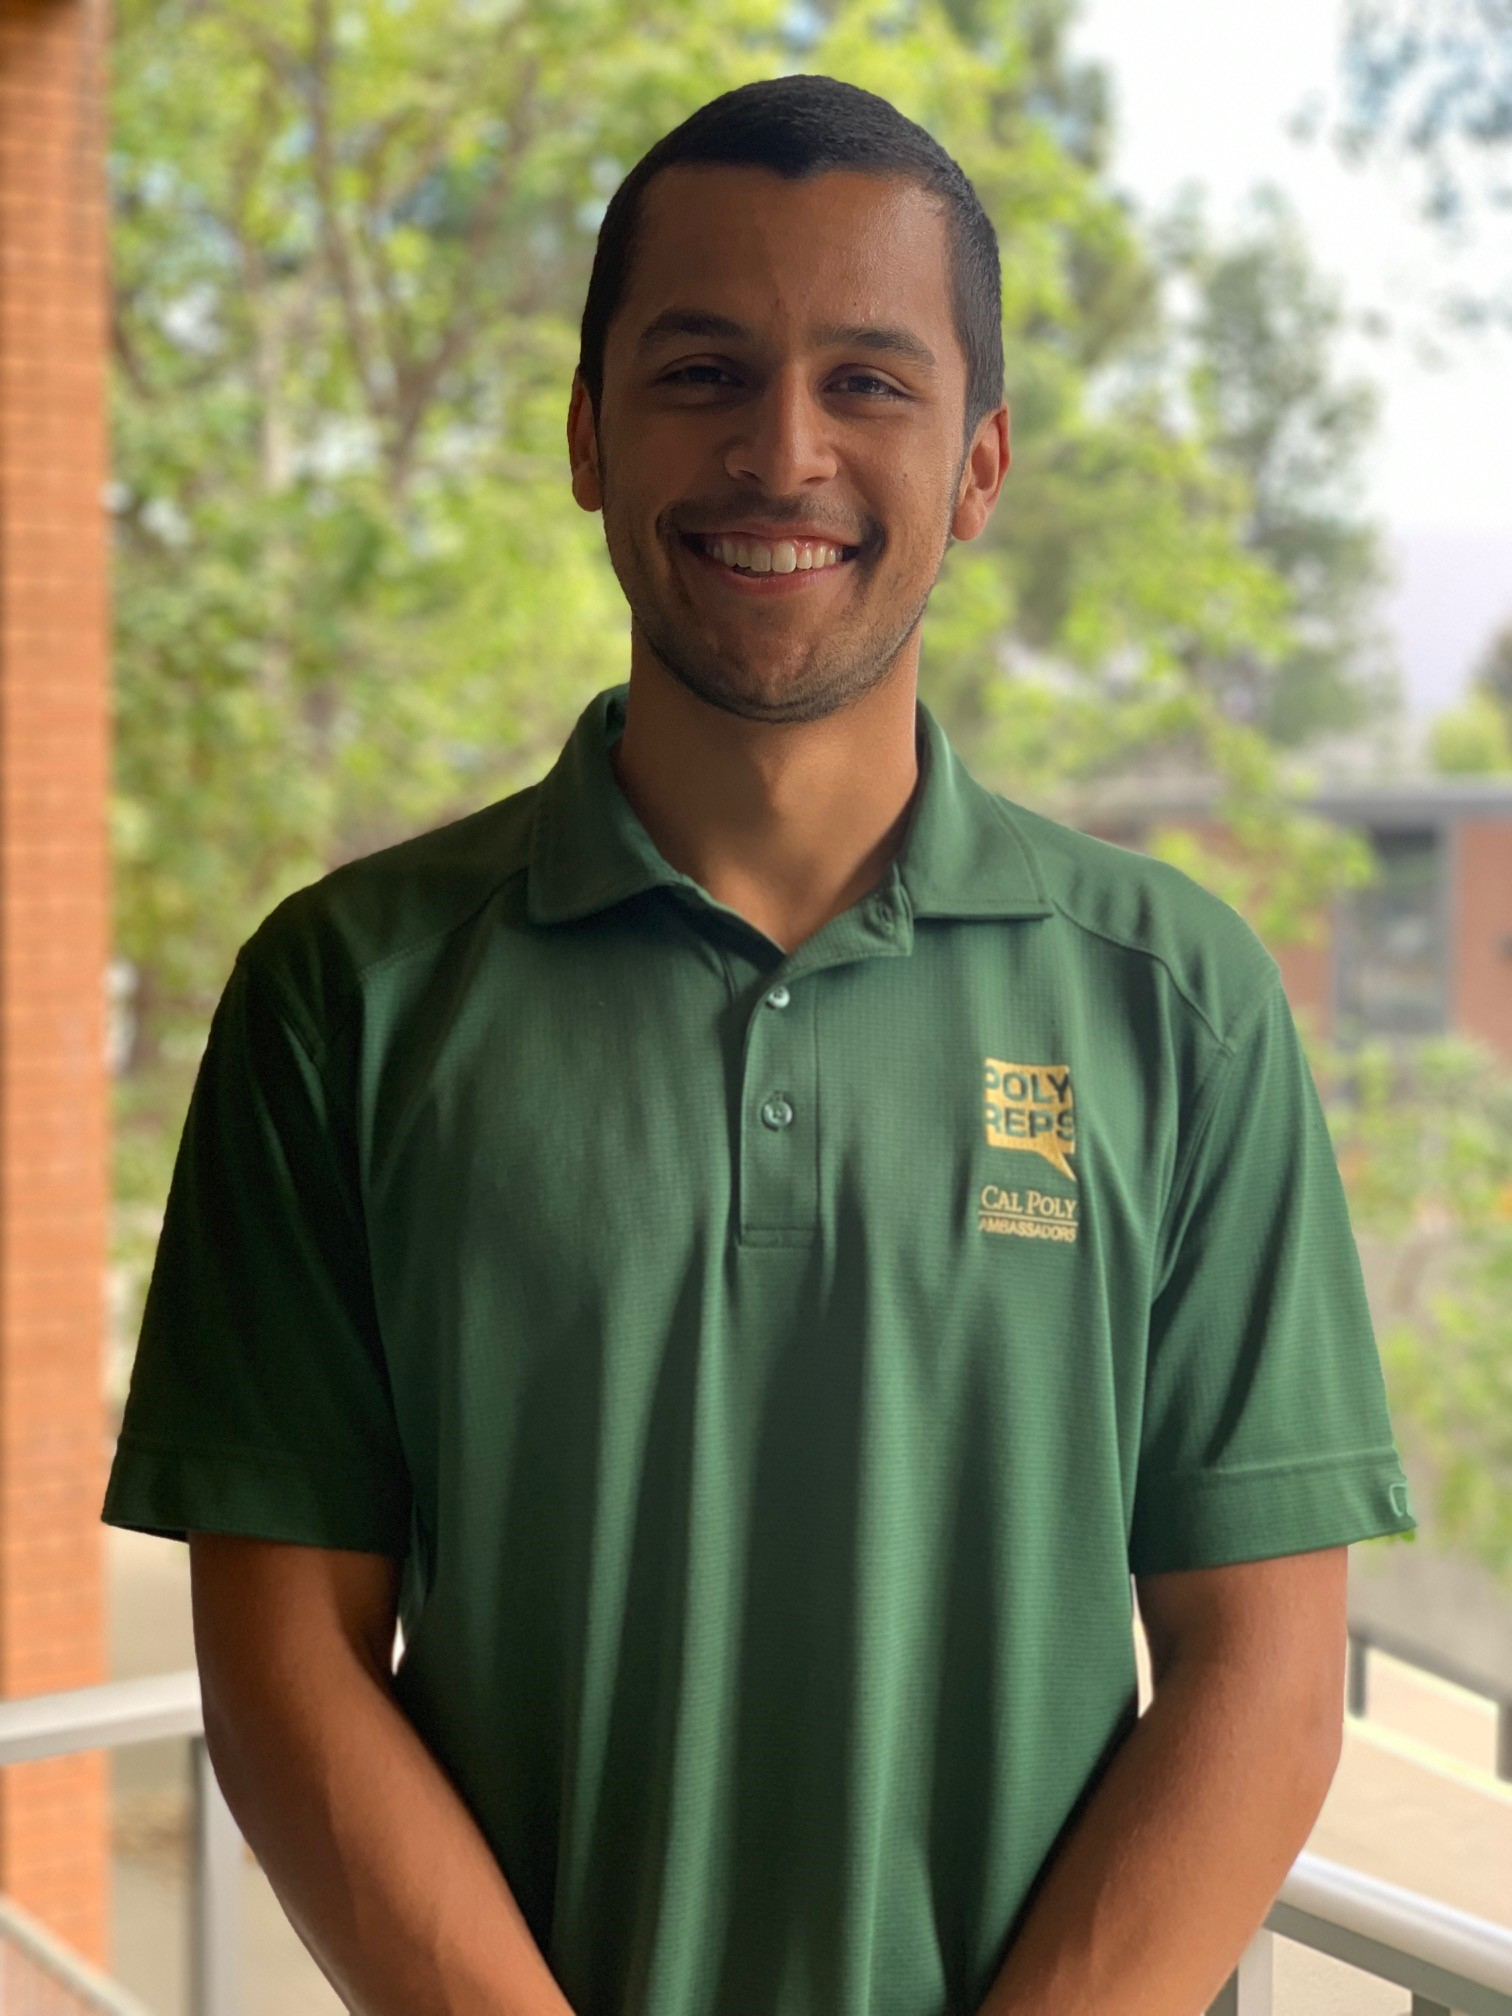 Cal Poly student Marco Zuniga